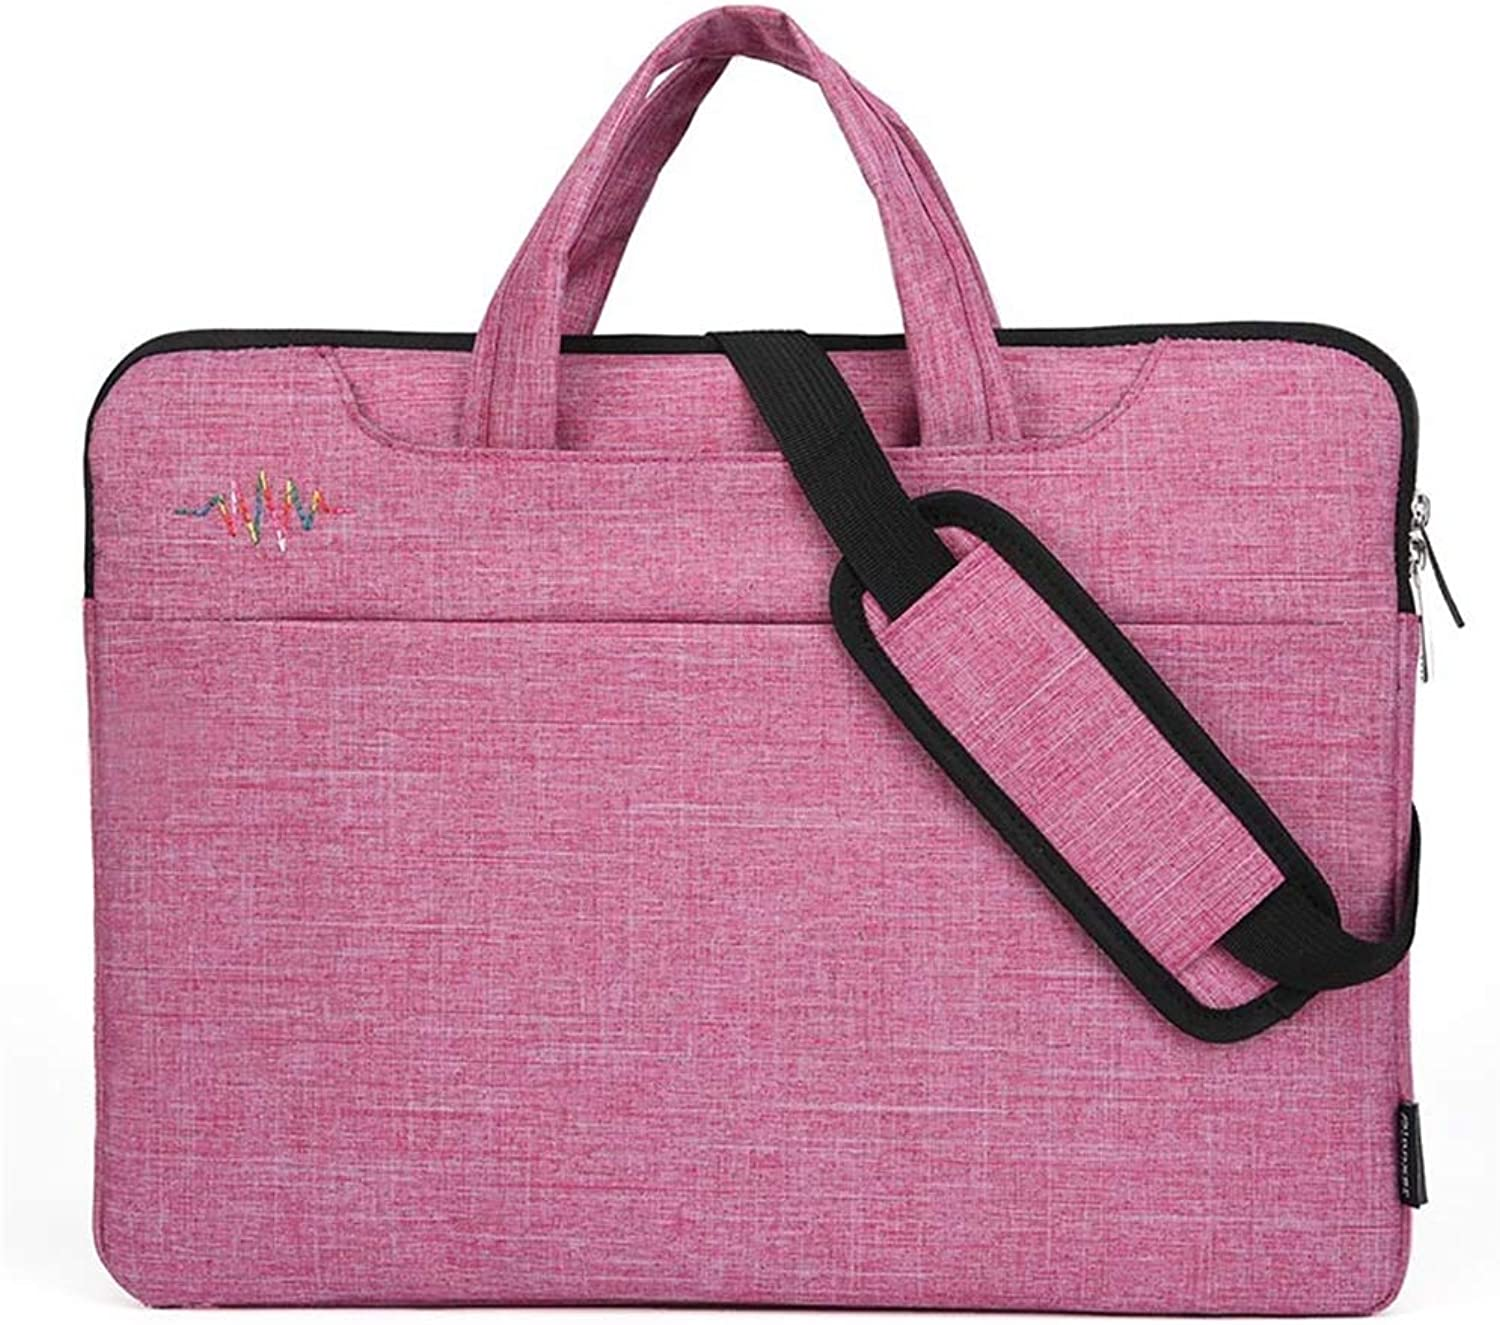 Laptop Bag Briefcase Shoulder Messenger UltraThin Waterproof Tablet Business Handbag Ladies and Men's Computer case Portable Laptop with to for Office Travel,Pink